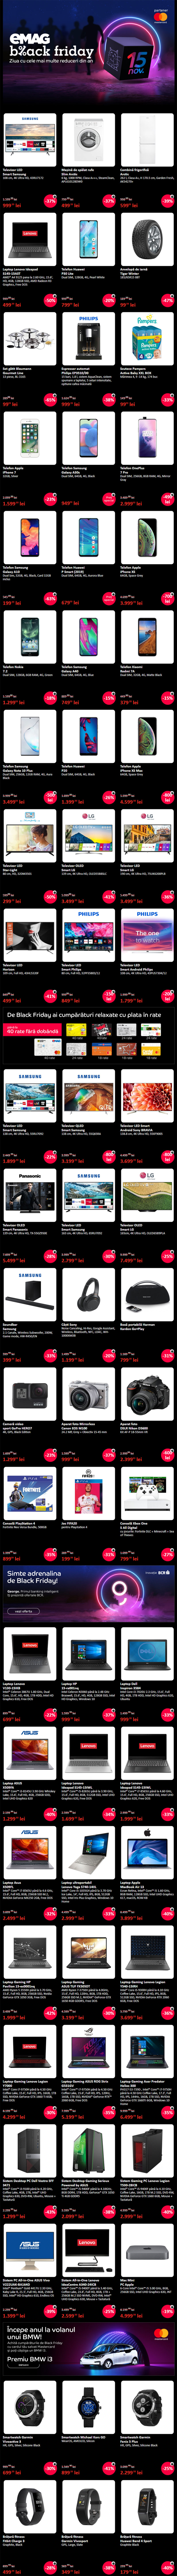 Catalog-eMAG-Black-Friday-complet